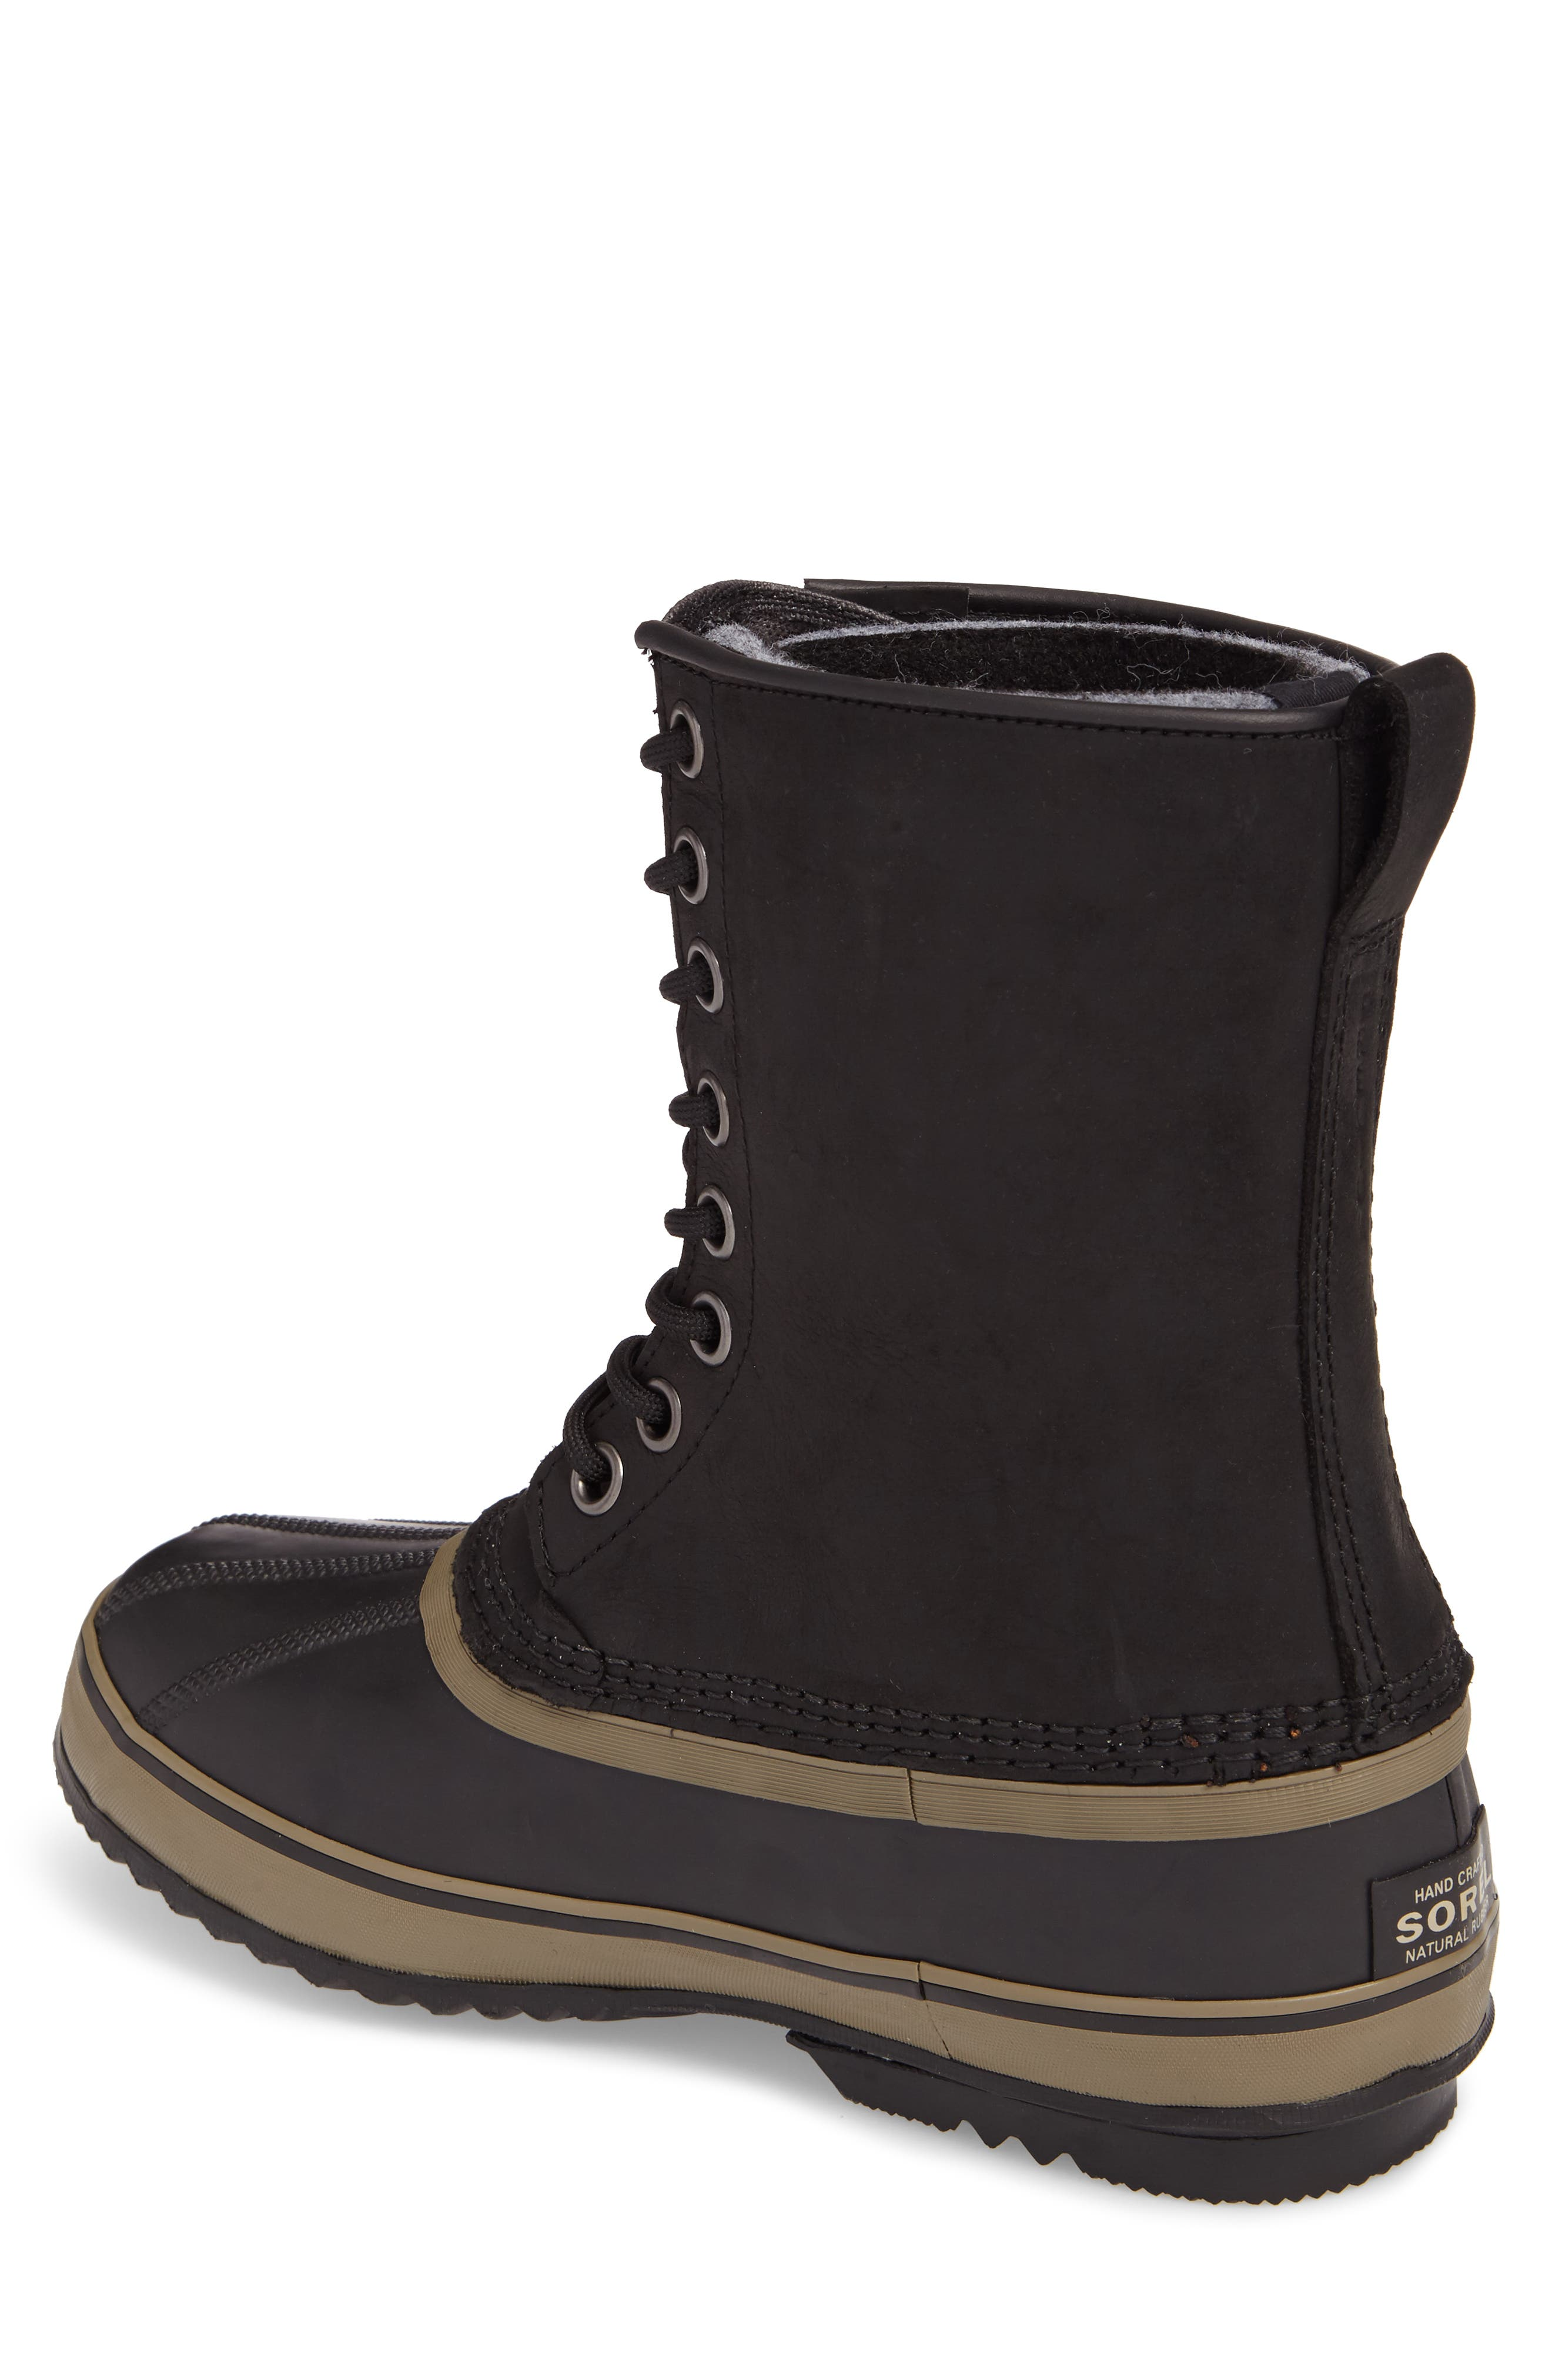 Alternate Image 2  - SOREL '1964 Premium T' Snow Boot